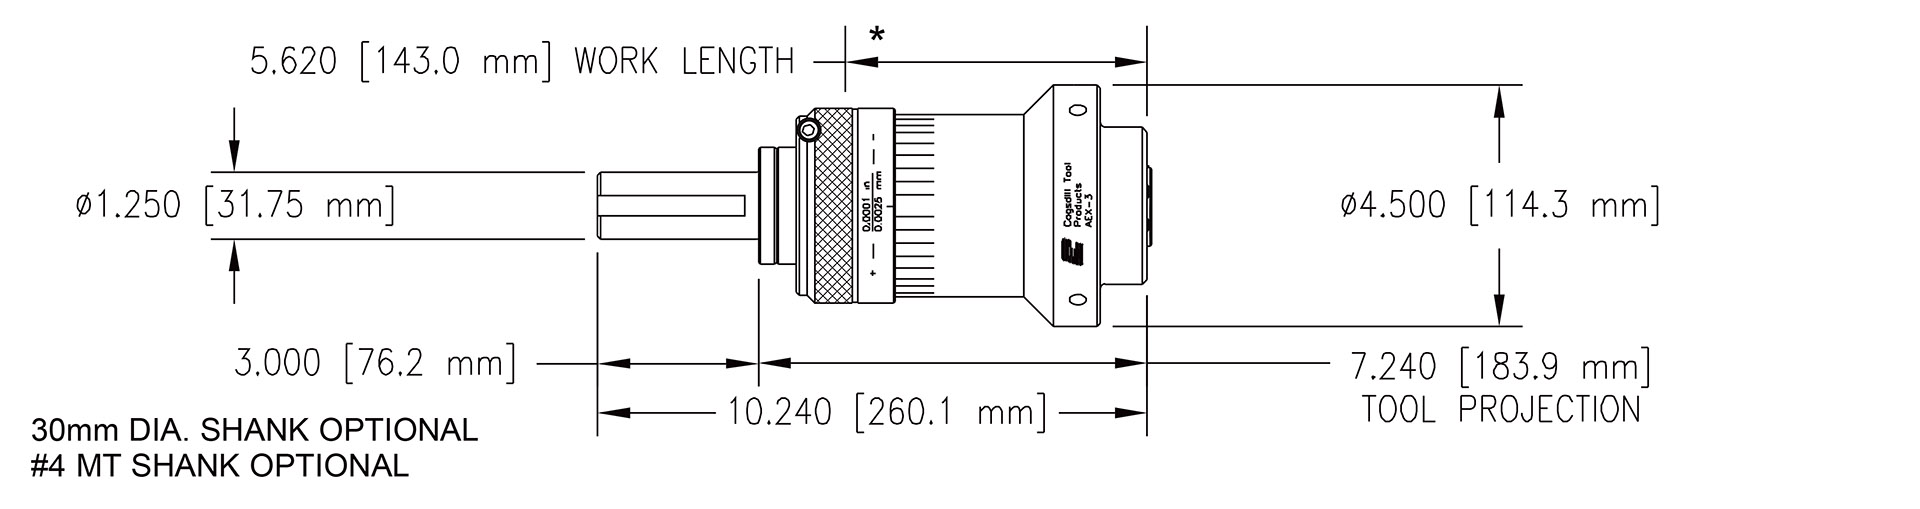 AEX-3 specifications